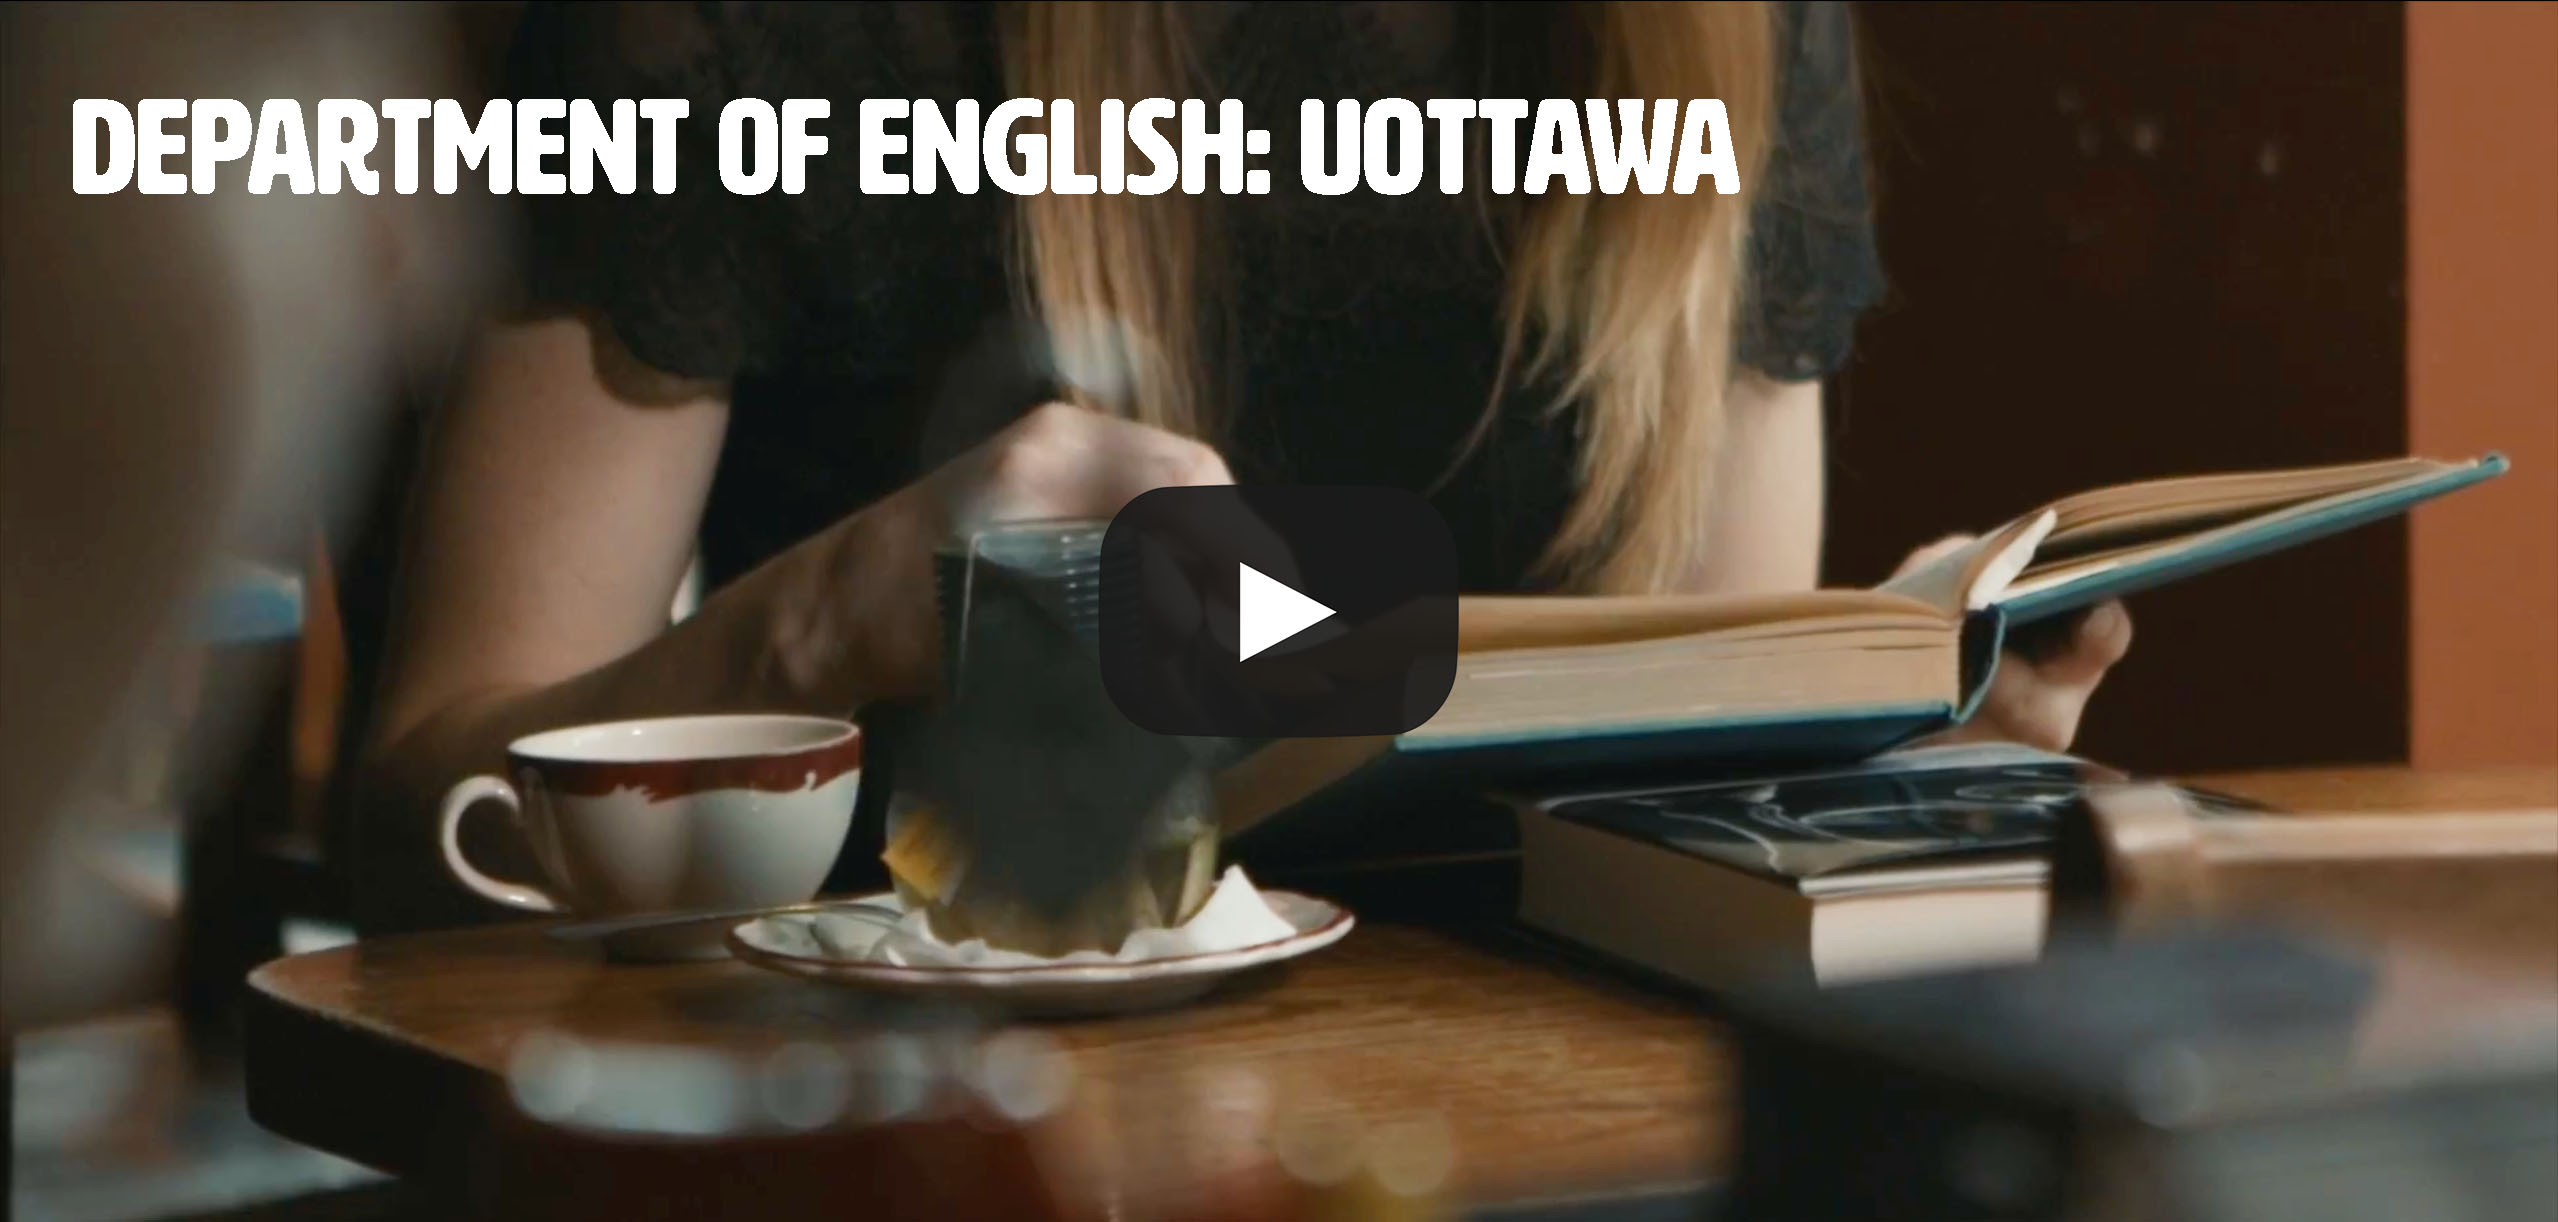 About | Department of English | University of Ottawa